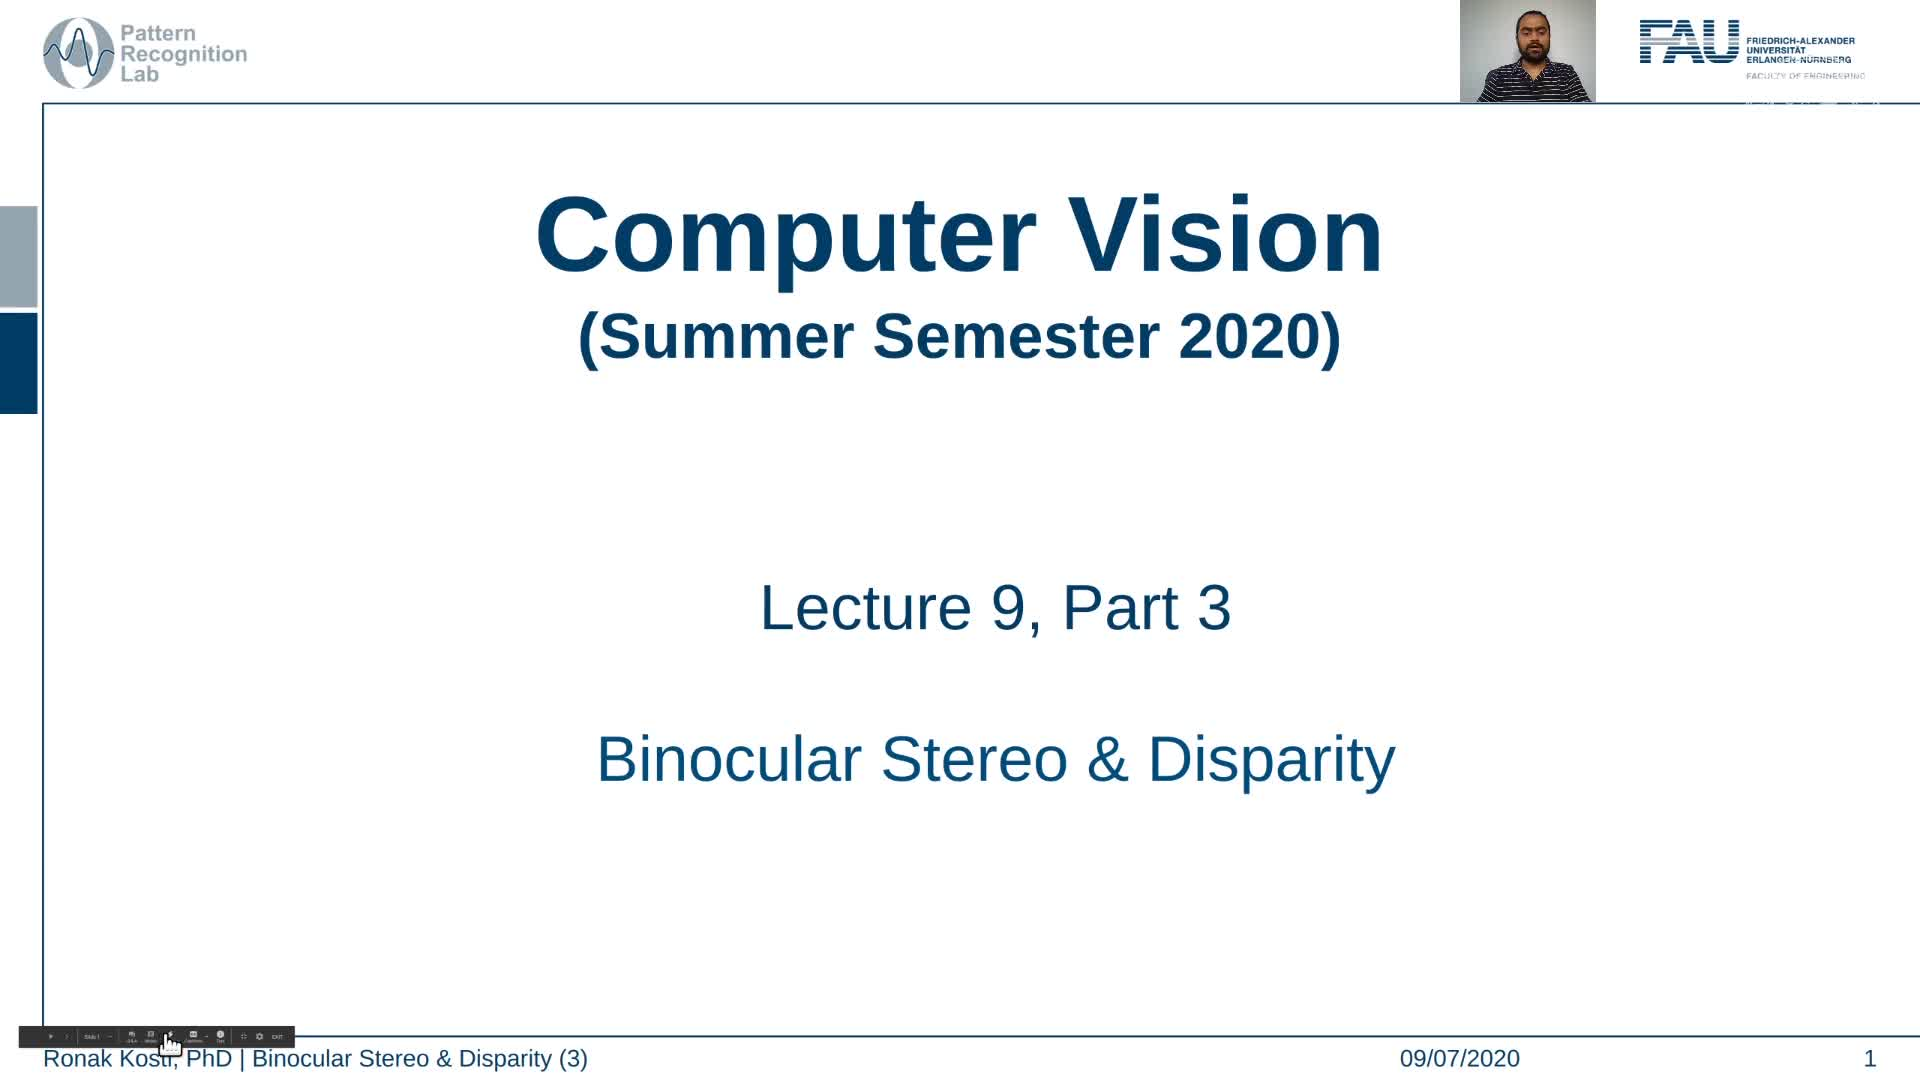 Binocular Stereo and Disparity (Lecture 9, Part 3) preview image